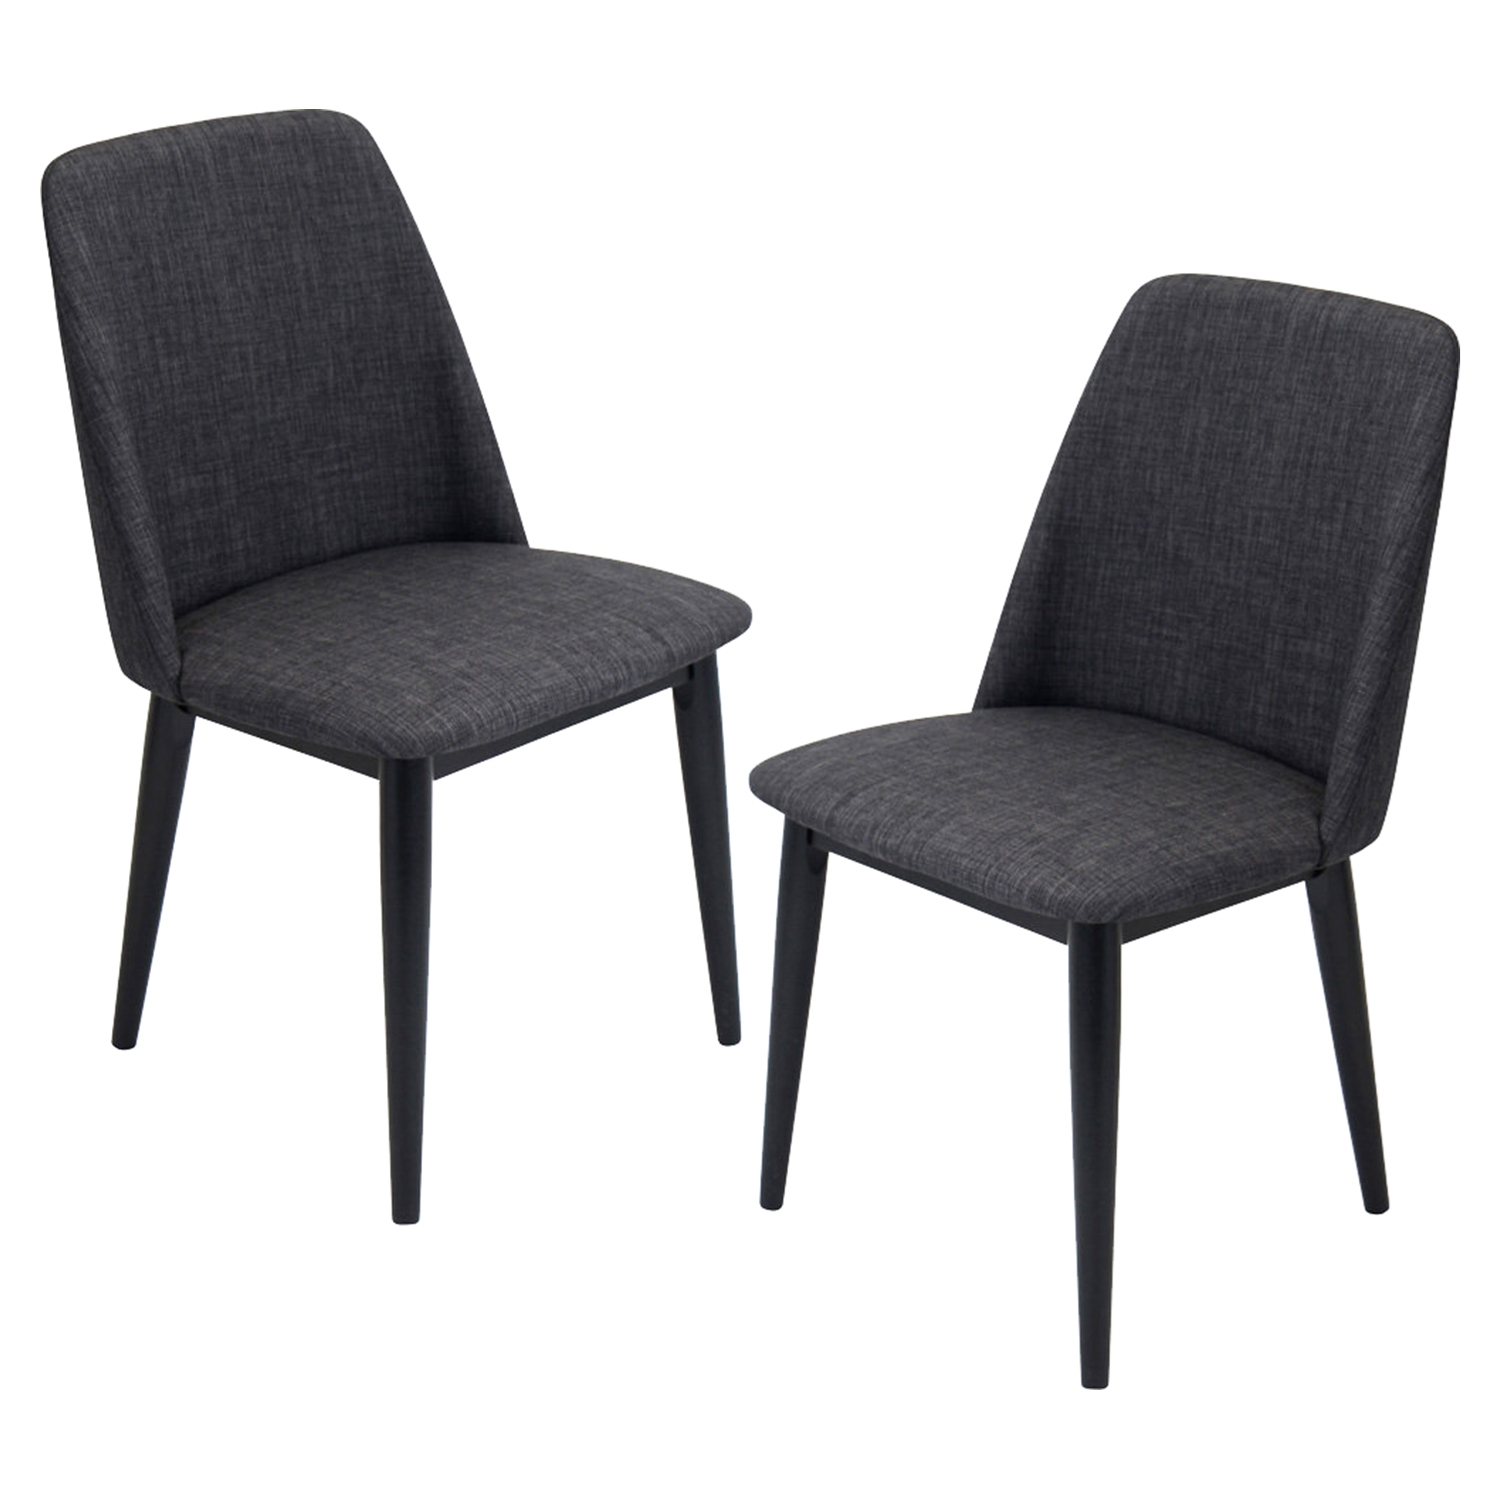 Tintori Upholstery Dining Chair - Charcoal, Black (Set of 2)